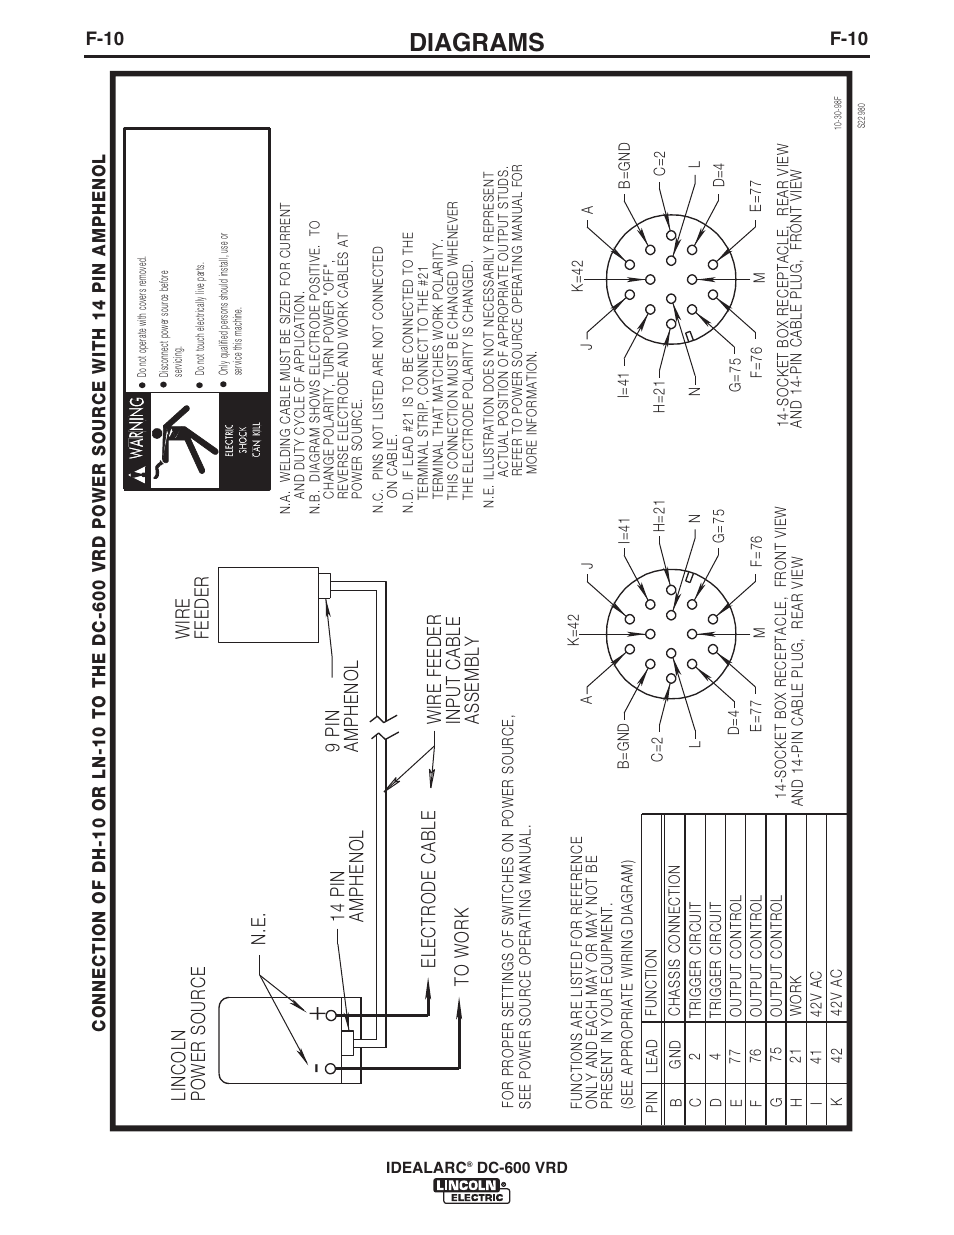 Dh Wiring Diagram Duct Detector Image 2001 Club Car Gas Lincoln Dc Printable Idealarc Rzr 4 Dach